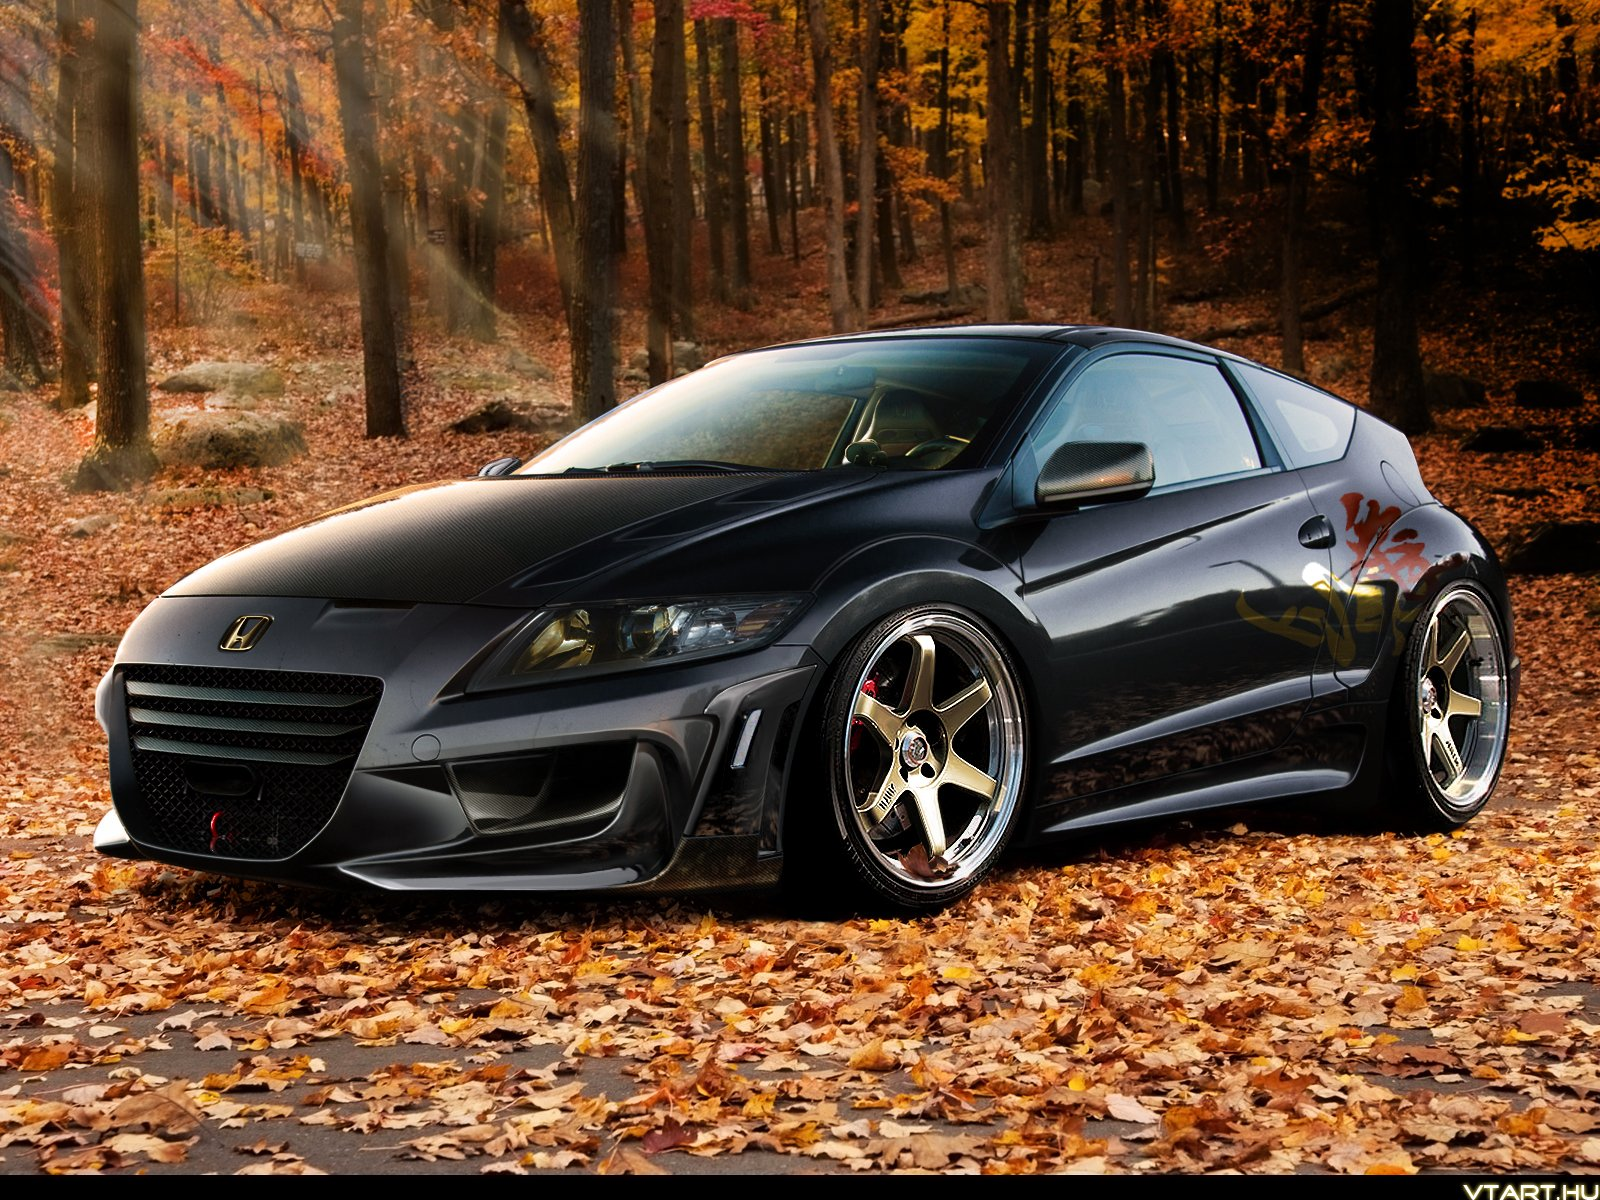 honda cr z coupe cars tuning japan wallpaper 1600x1200 503485 wallpaperup. Black Bedroom Furniture Sets. Home Design Ideas